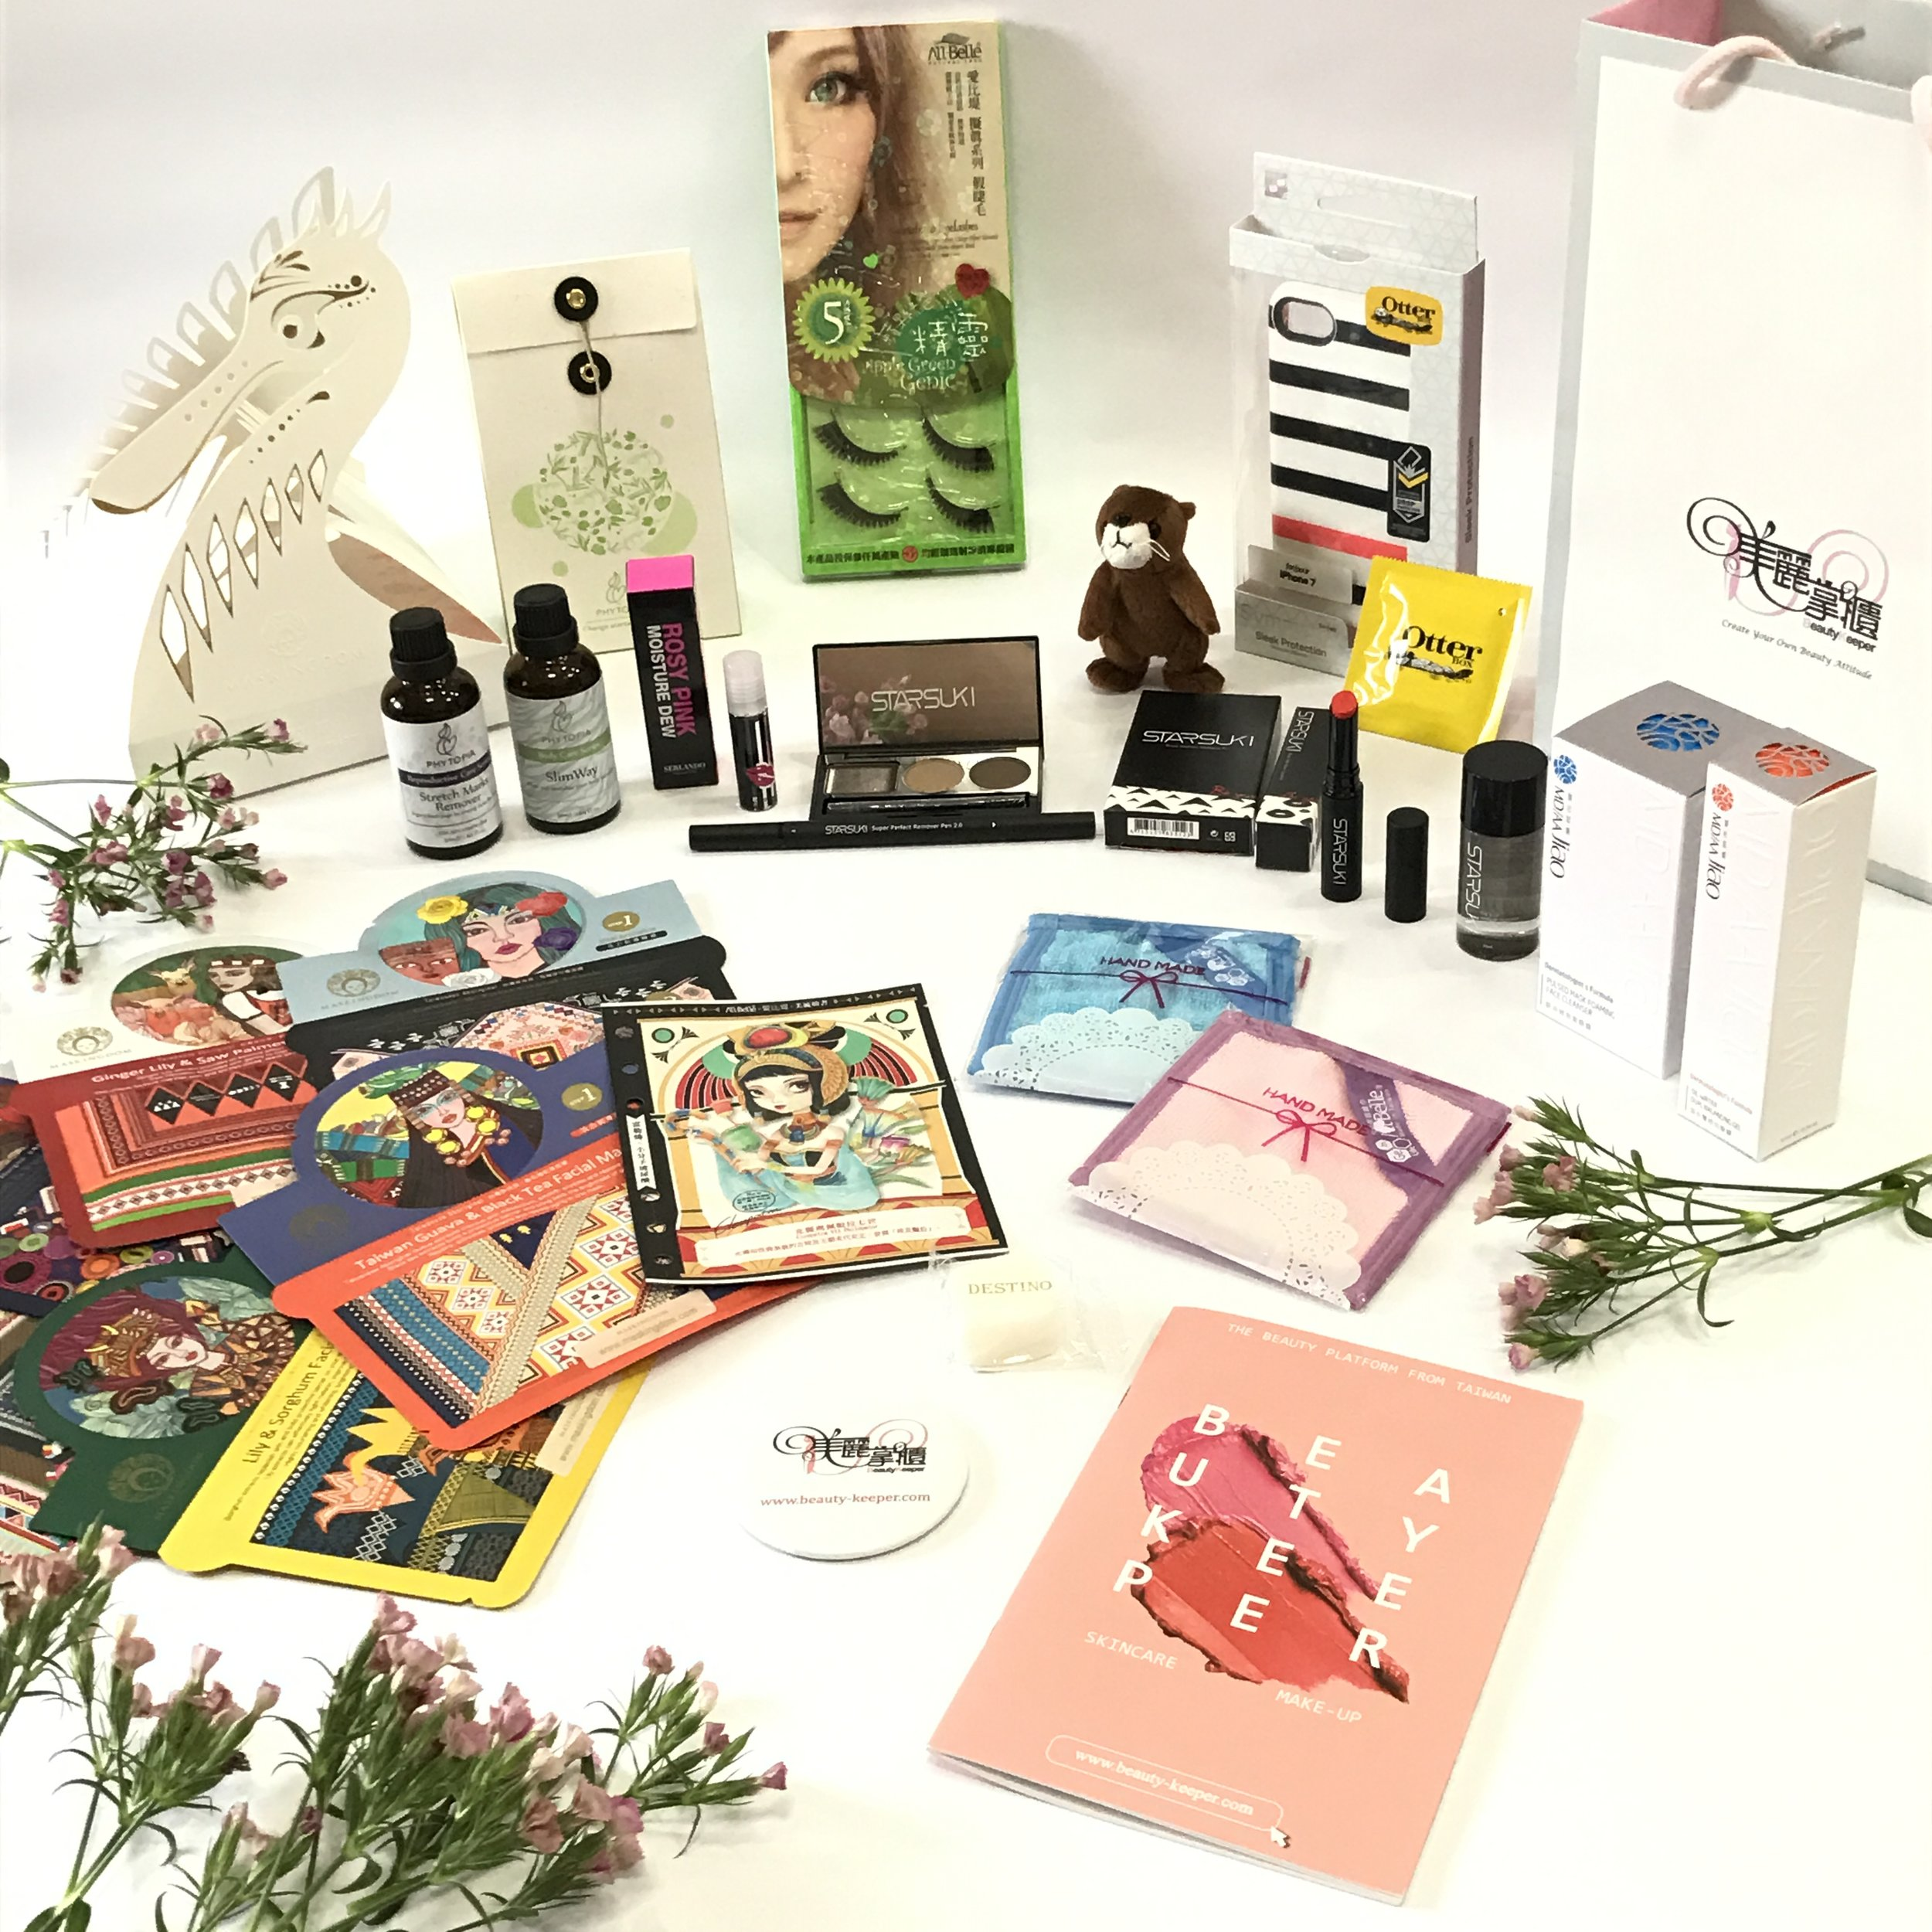 Combine Goodies I got from Beauty-Keeper Events at Punggol Waterway Blogger's Party &The Shoppes at Marina Bay Sands.